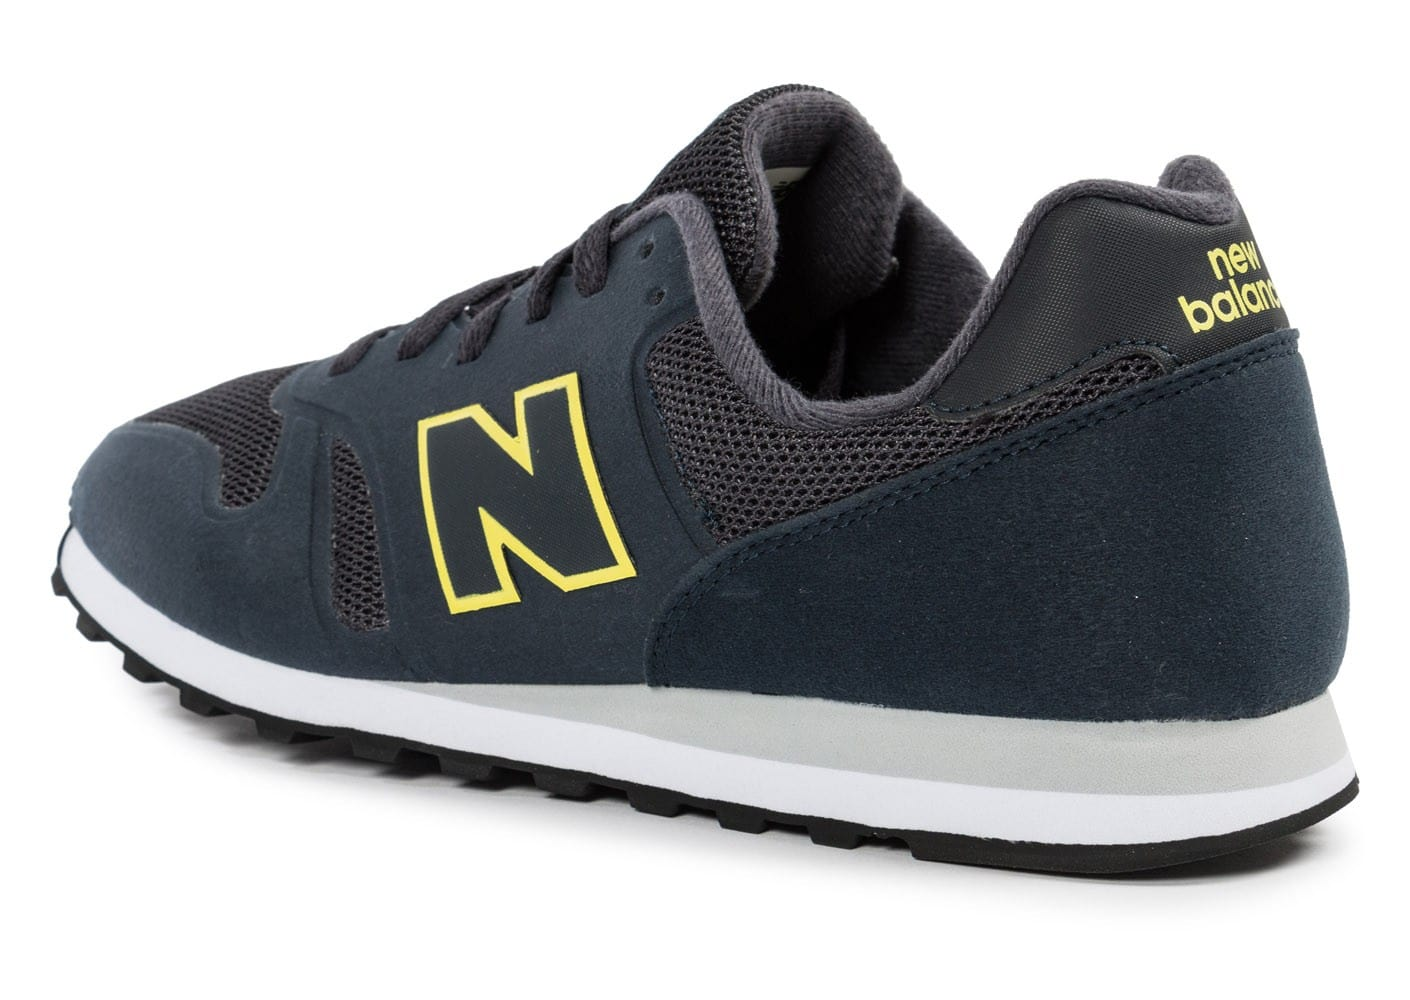 check out 95d5c 1dc07 0538-chaussures-new-balance-md373-ny-bleu-marine-vue-arriere 1.jpg